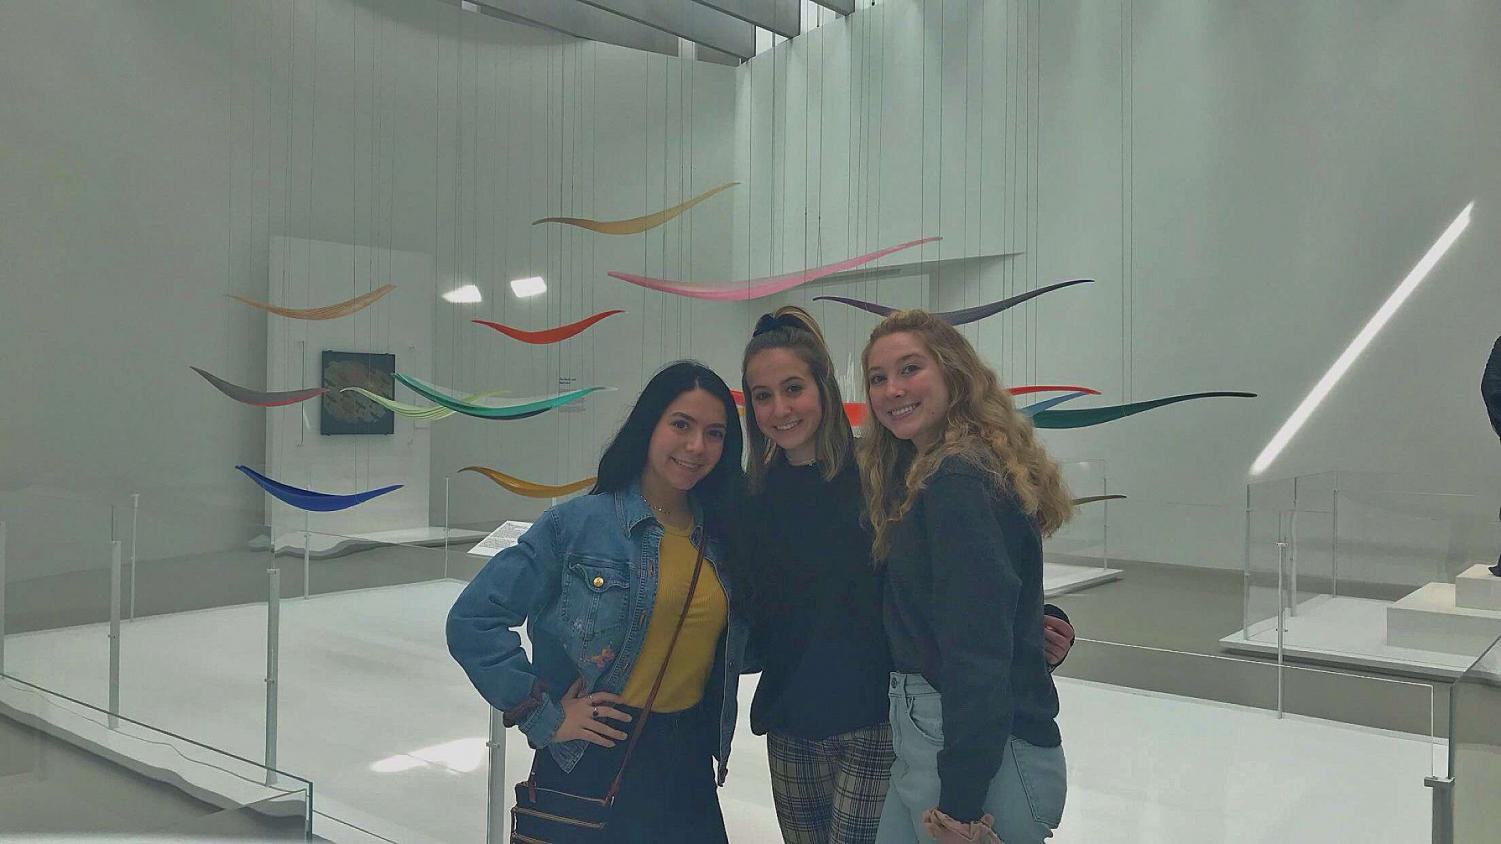 Experimenting with glass blowing. Junior April Silvia, sophomore Grazia Macharola and junior Paige Glasgow pose for a picture at the Corning Museum in New York. The National Art Honor Society traveled to the museum on Wednesday, April 17.